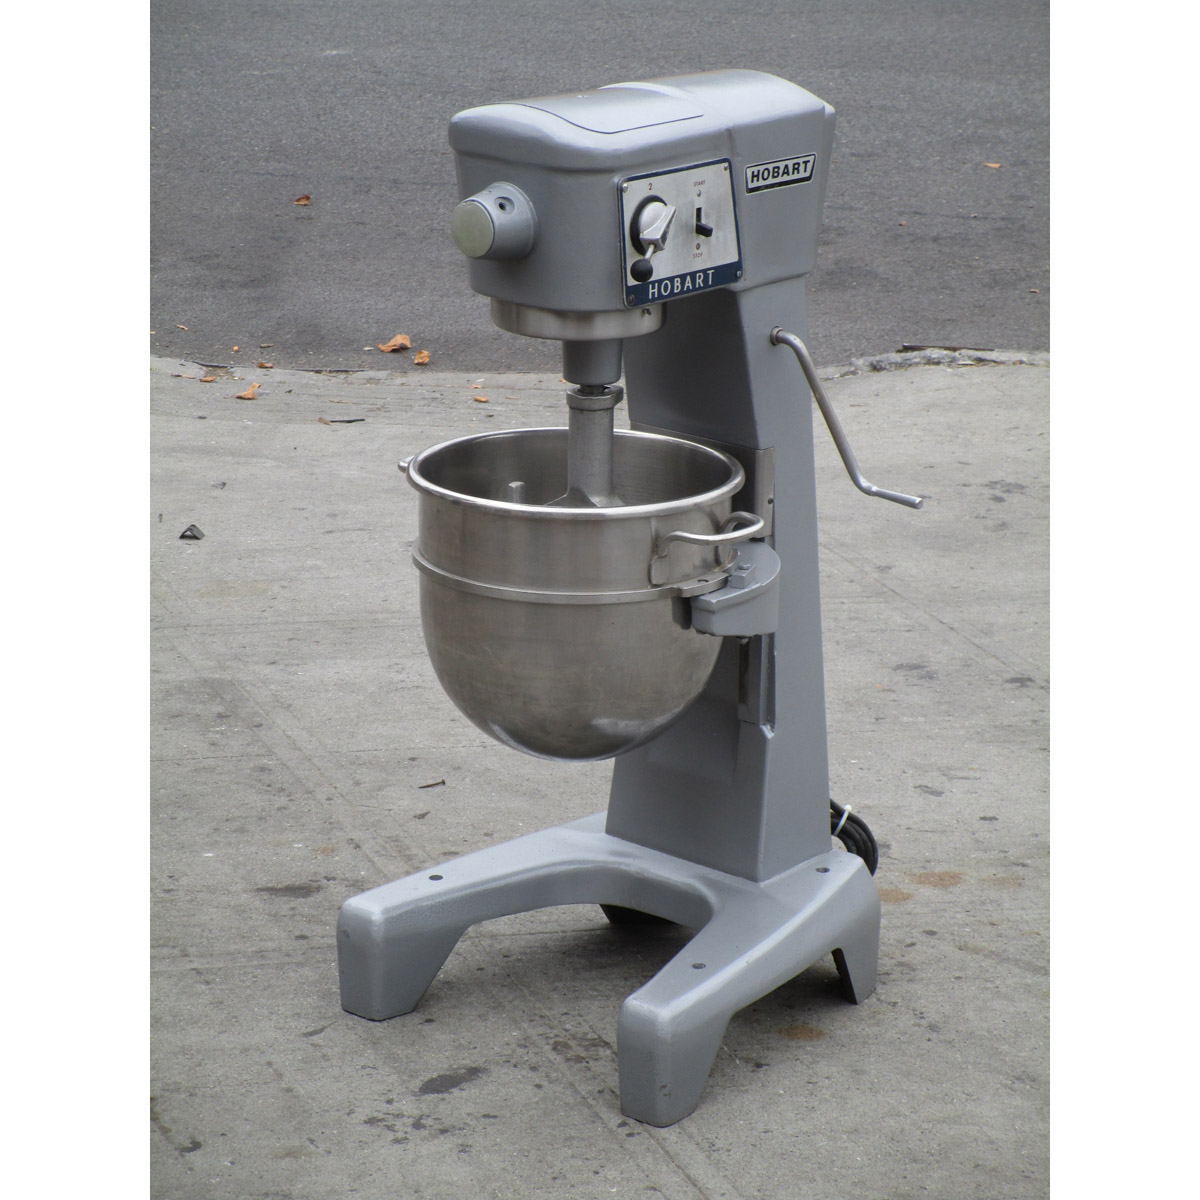 Hobart-Quart-Mixer-Great-Condition Product Image 770